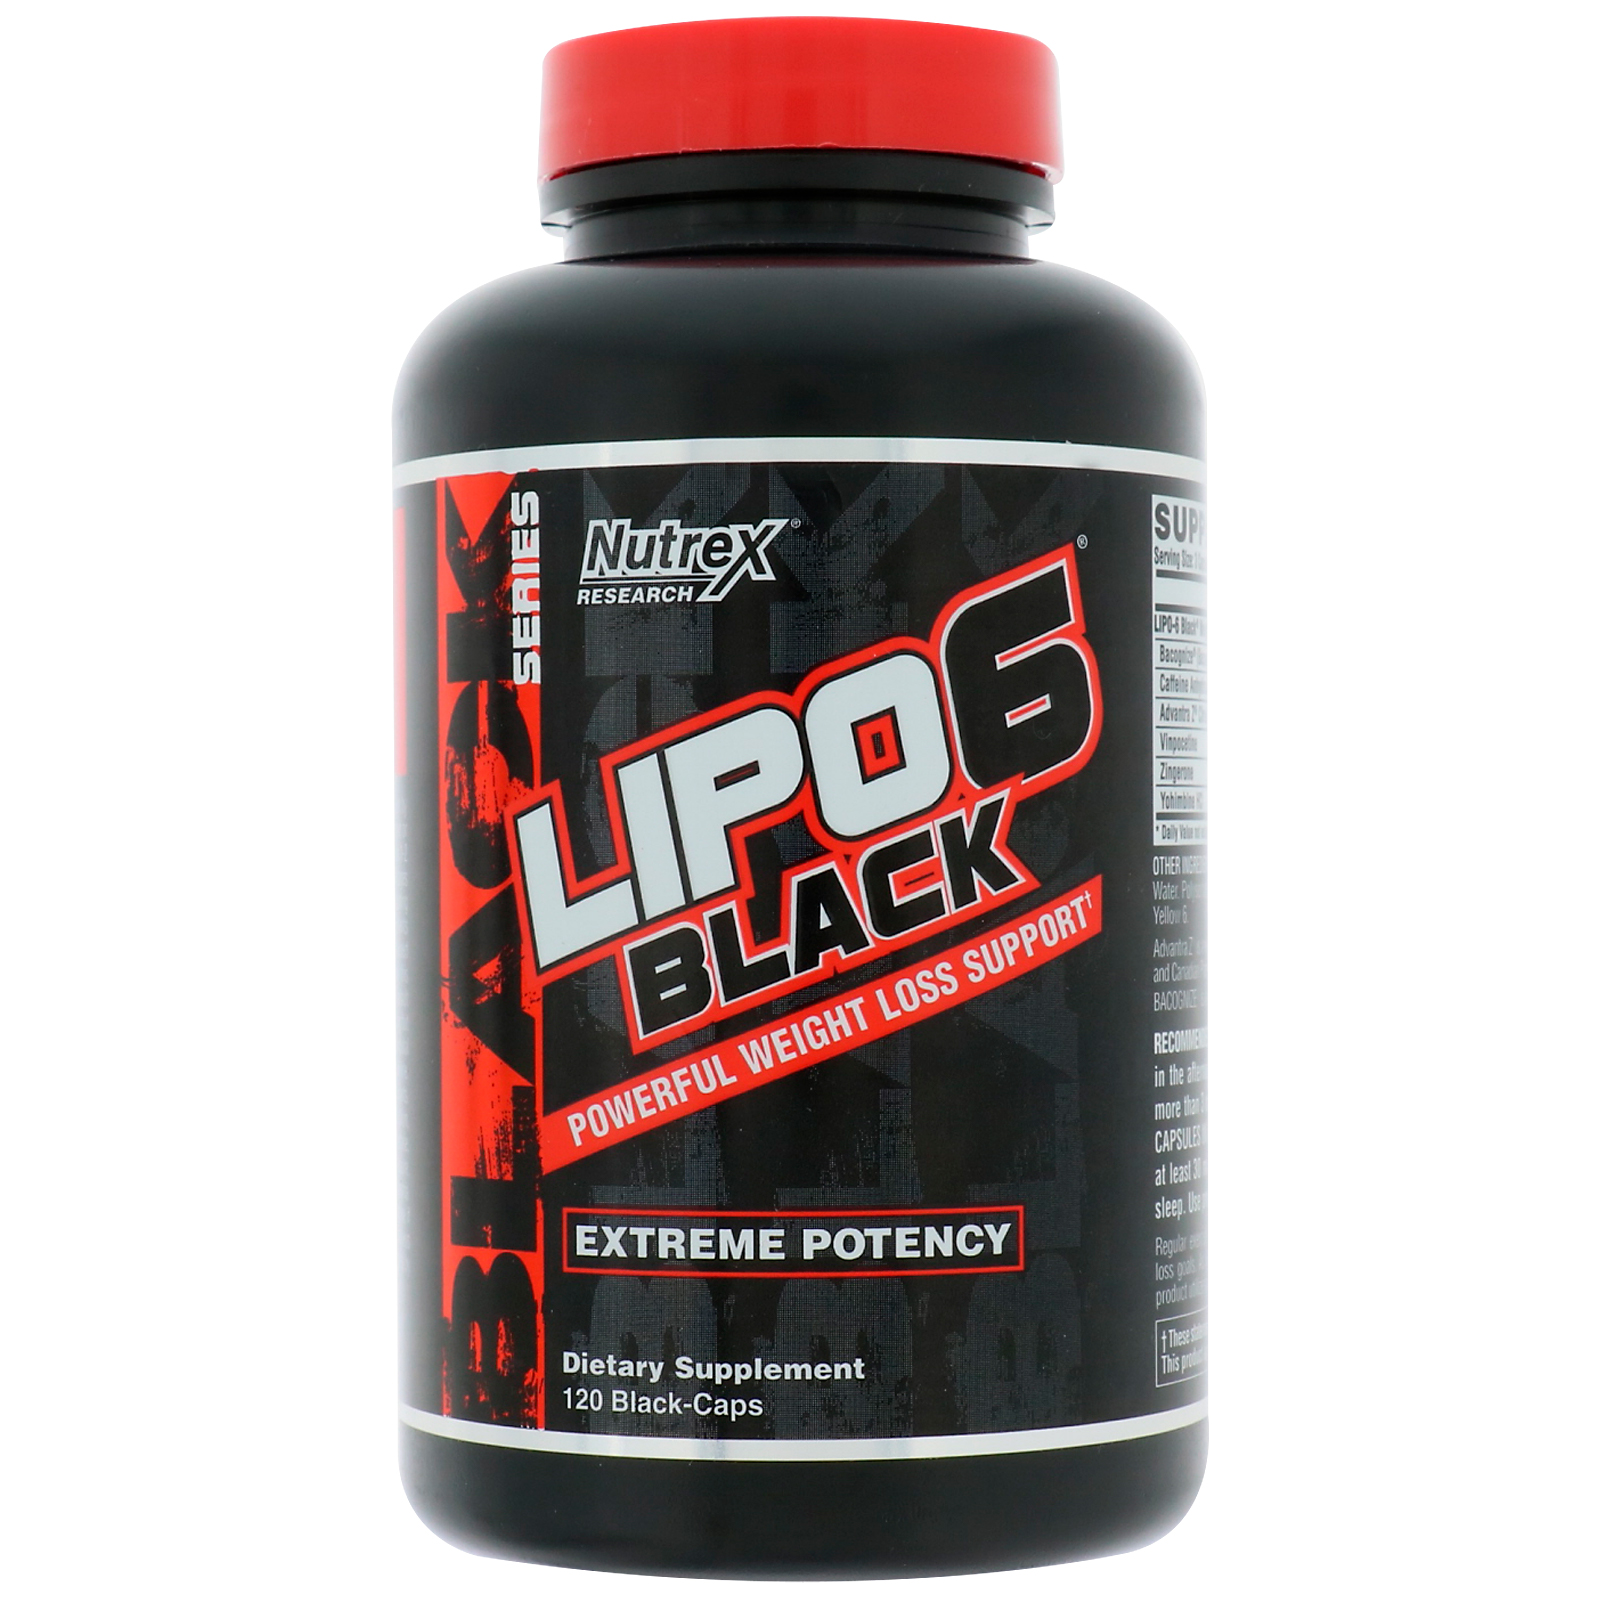 Nutrex Research Lipo 6 Black Extreme Potency Weight Loss